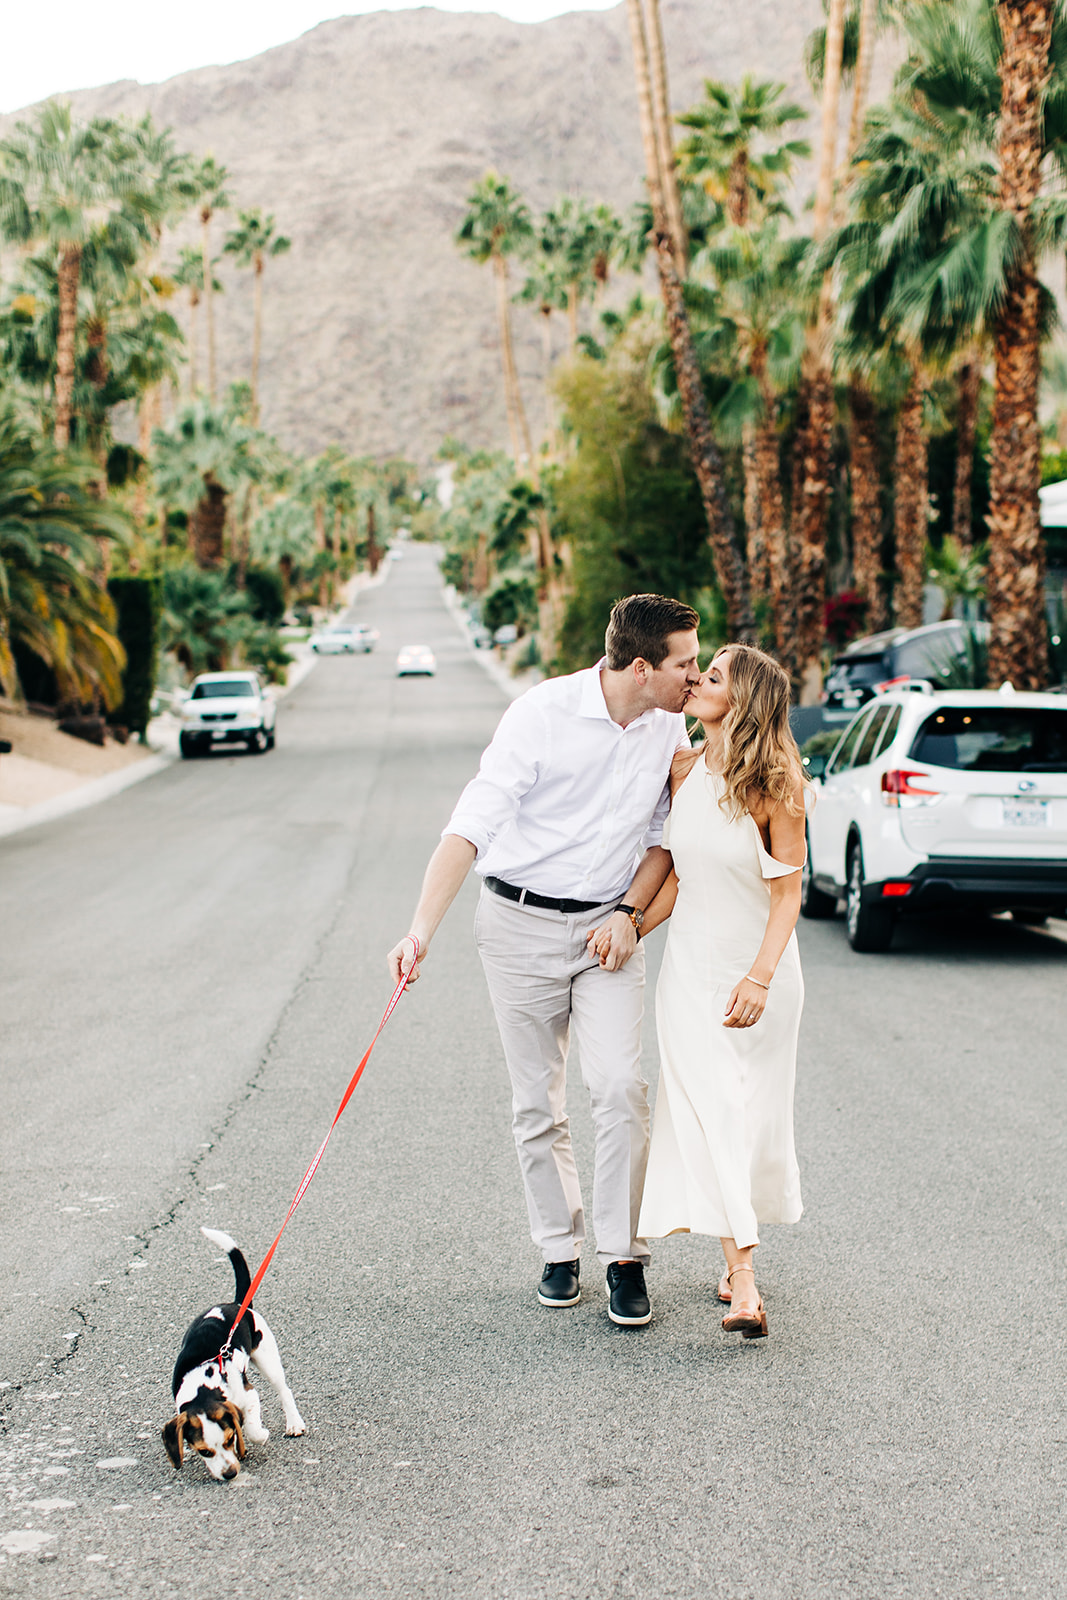 Paulina-Drew_Palm-Springs-Engagement-Photos_Clarisse-Rae_Southern-California-Wedding-Photographer-8